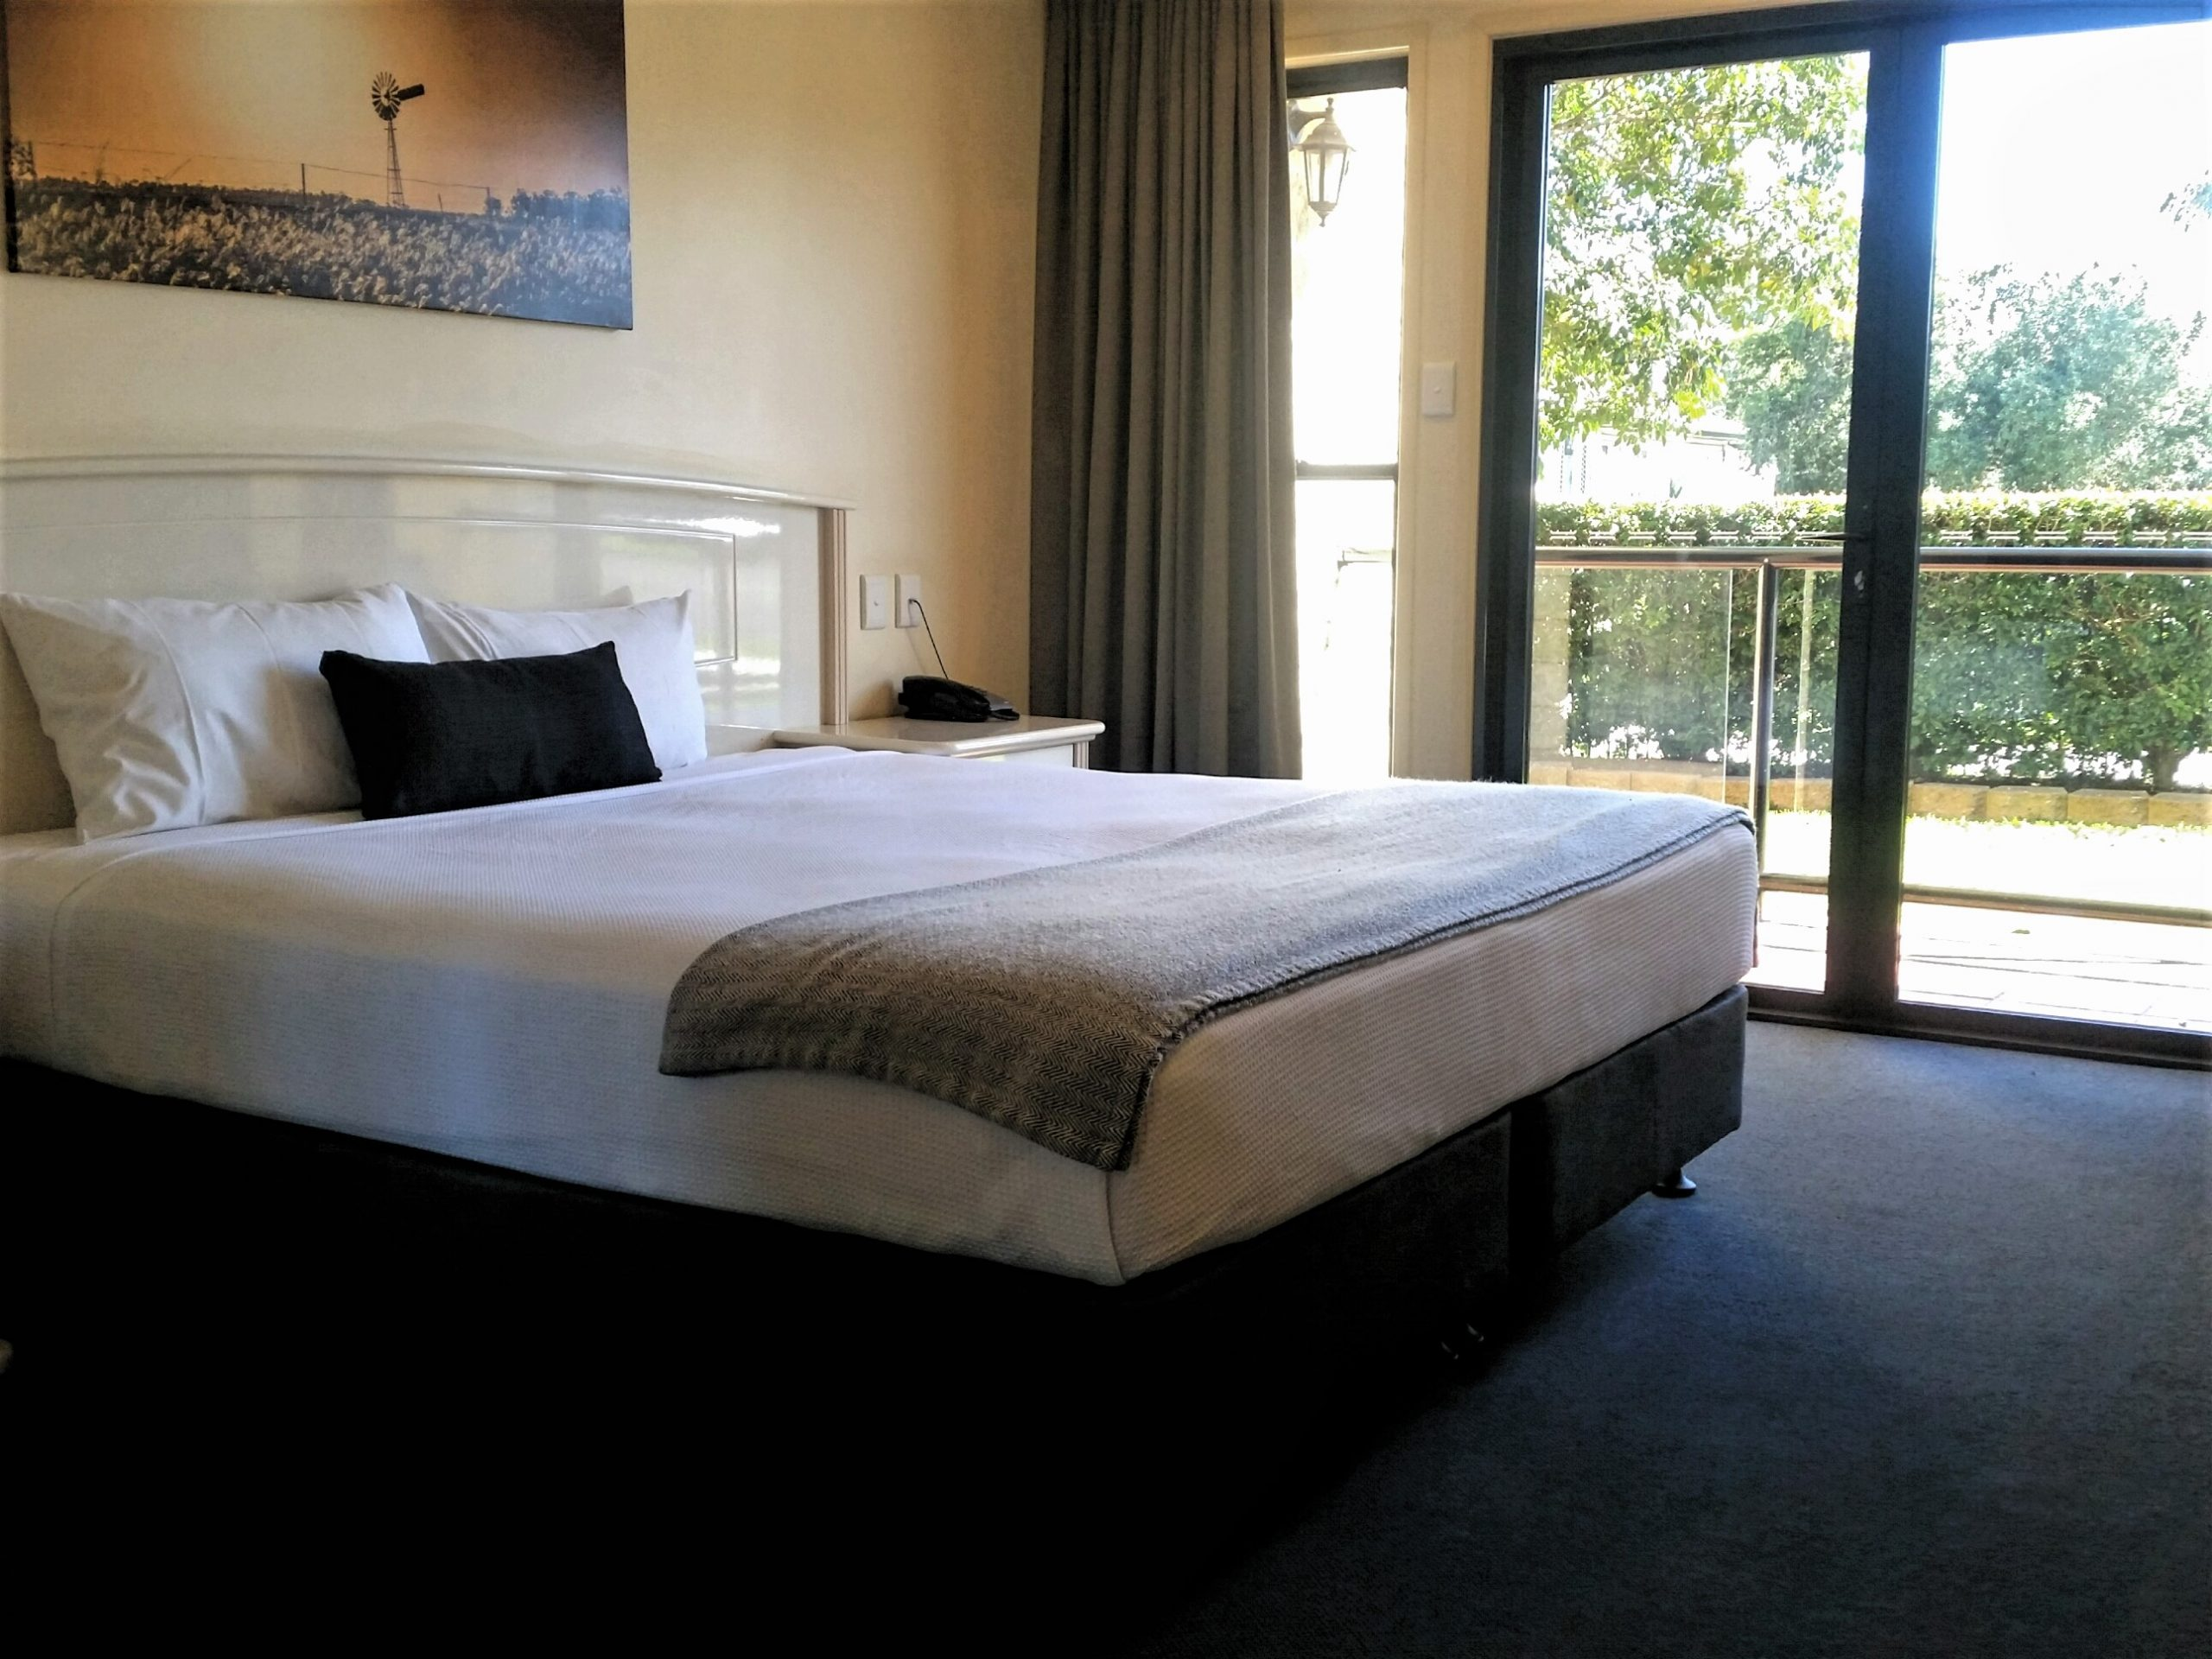 Dalby Accommodation - King Bed Room